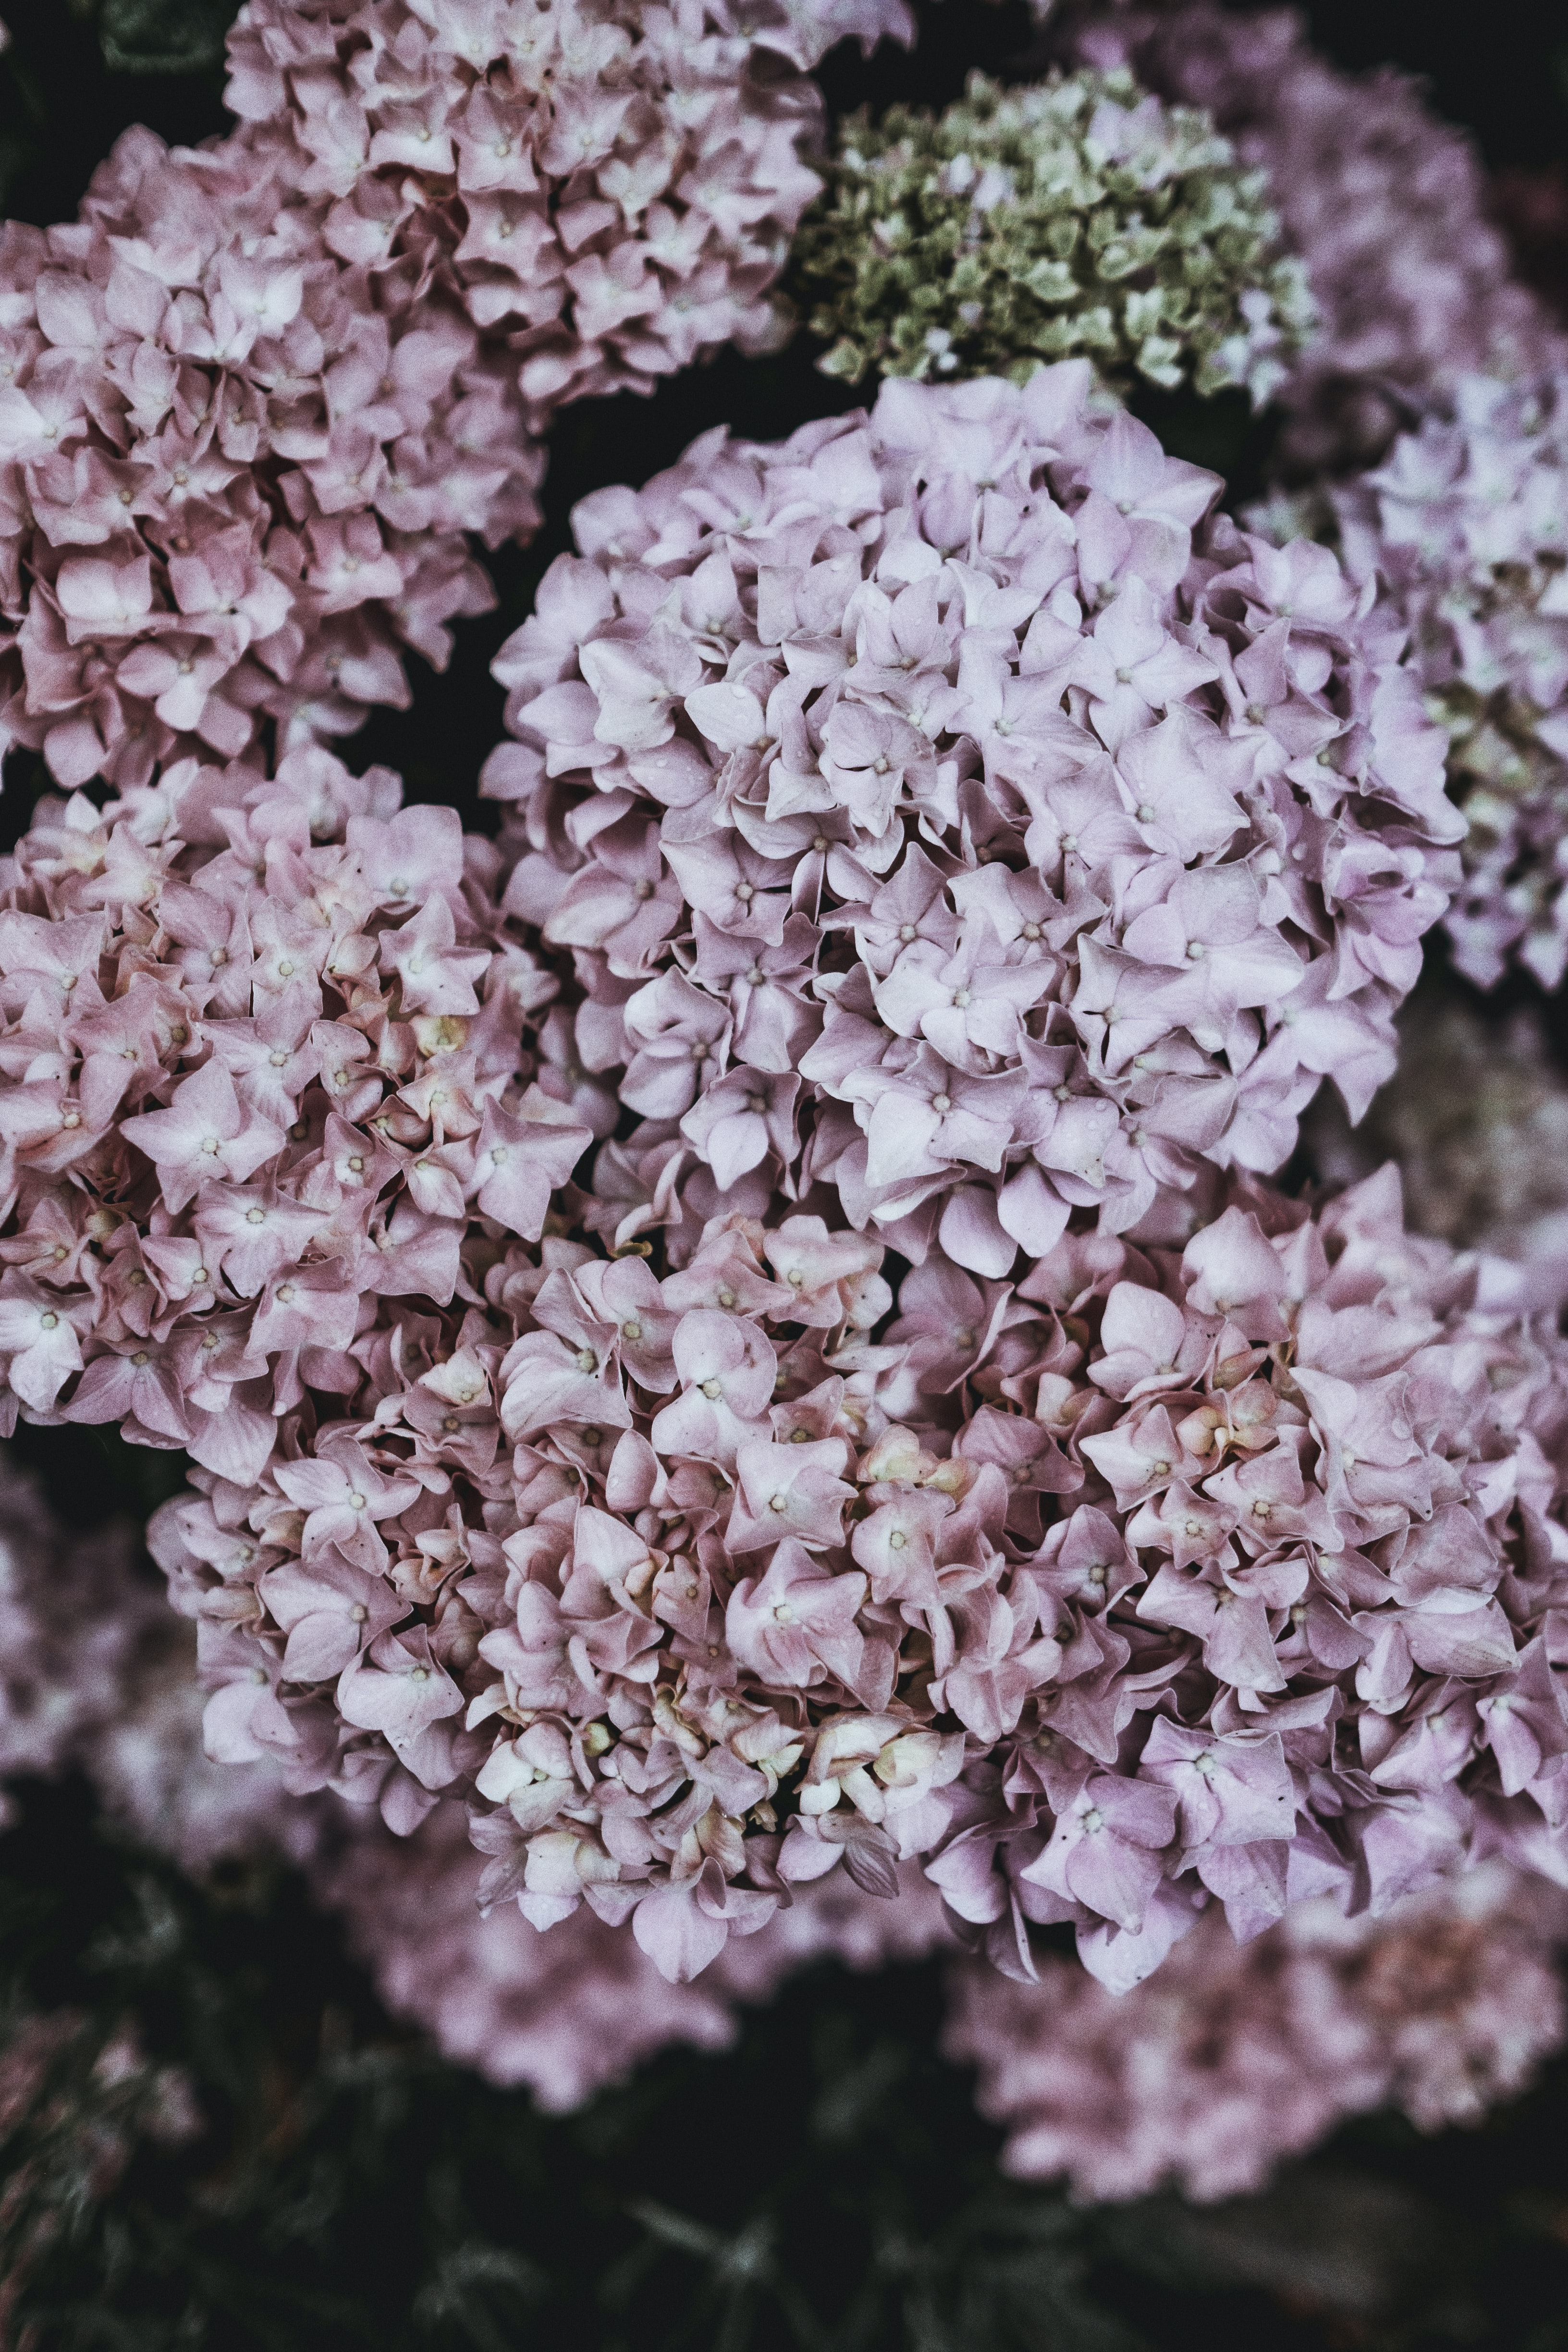 Pale shot of pink clusters of hydrangea flowers